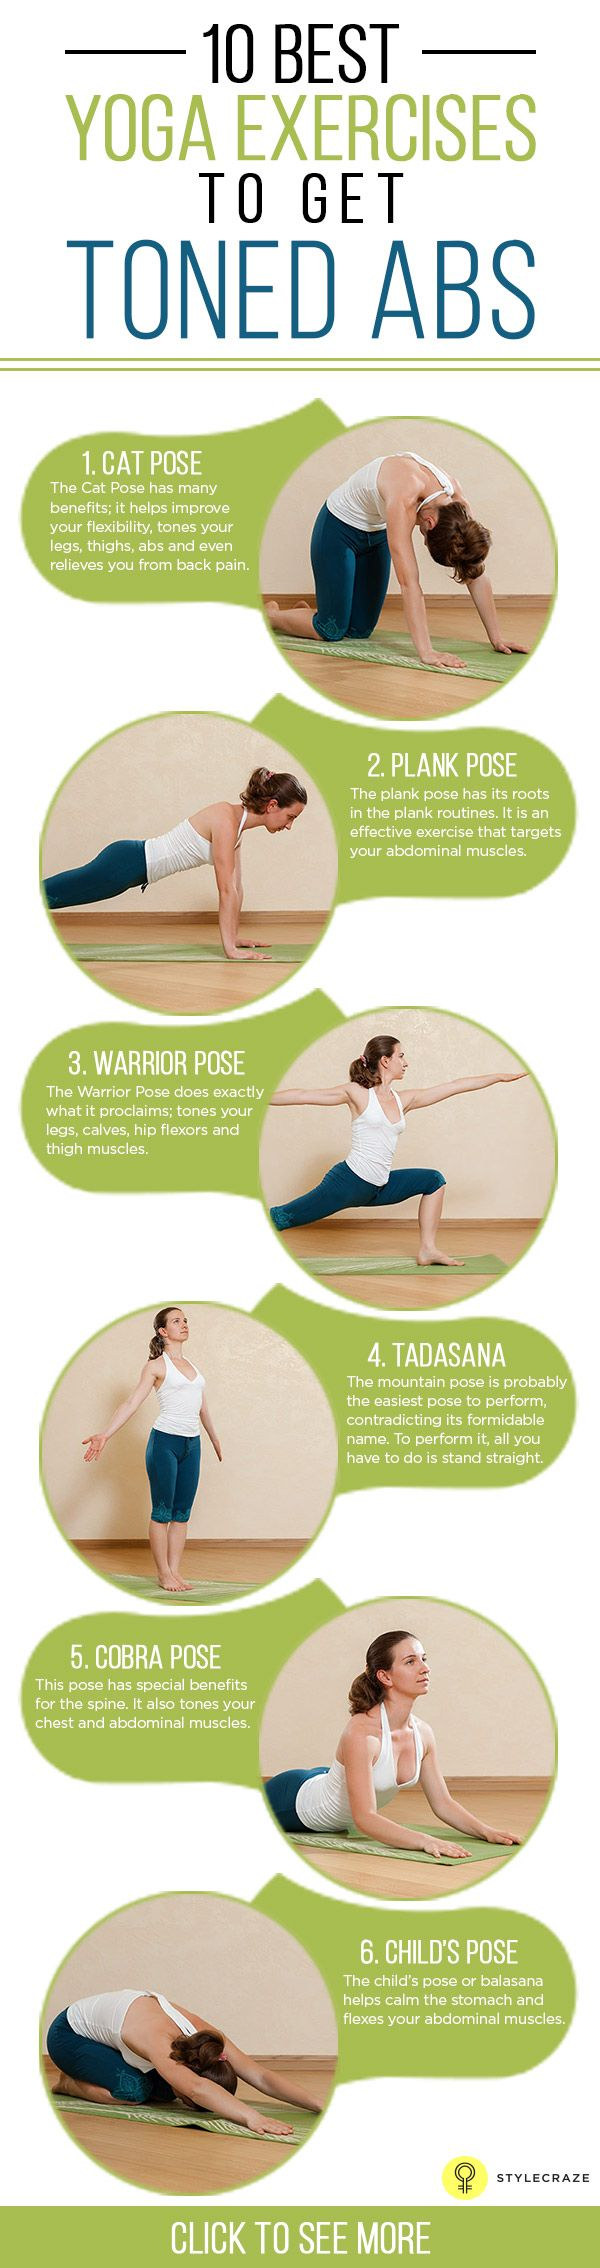 10 Best #Yoga Exercises To Get Toned #Abs